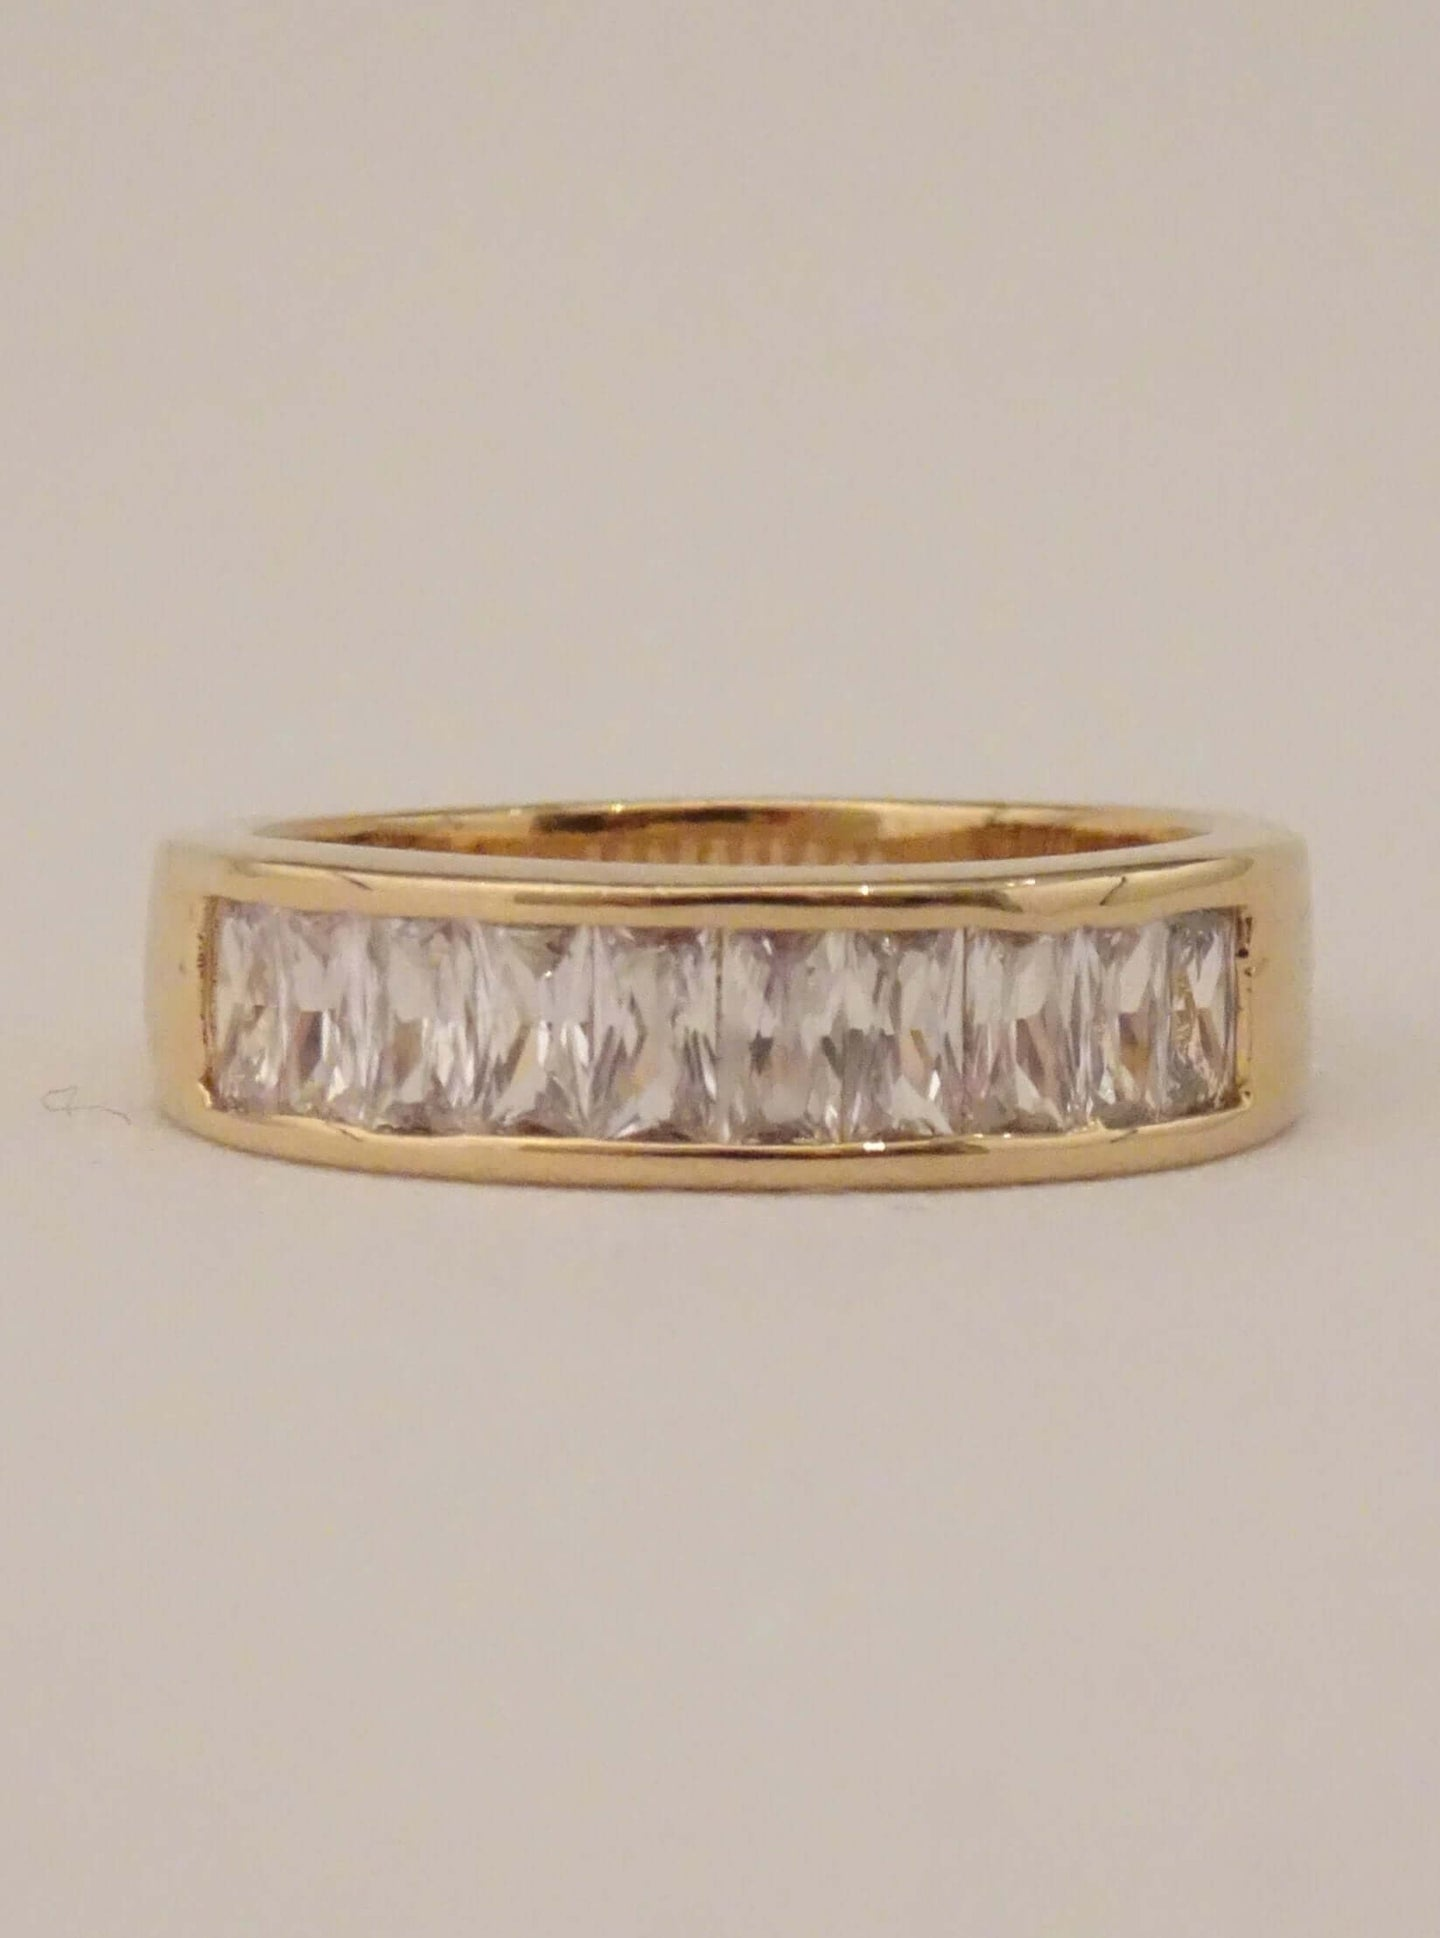 gold ring for women, fashion rings for women, unique rings for women, cool rings for women, affordable ring, rings for women, cute rings, gold stackable rings, index finger rings, pretty rings, pointer finger rings, CZ rings